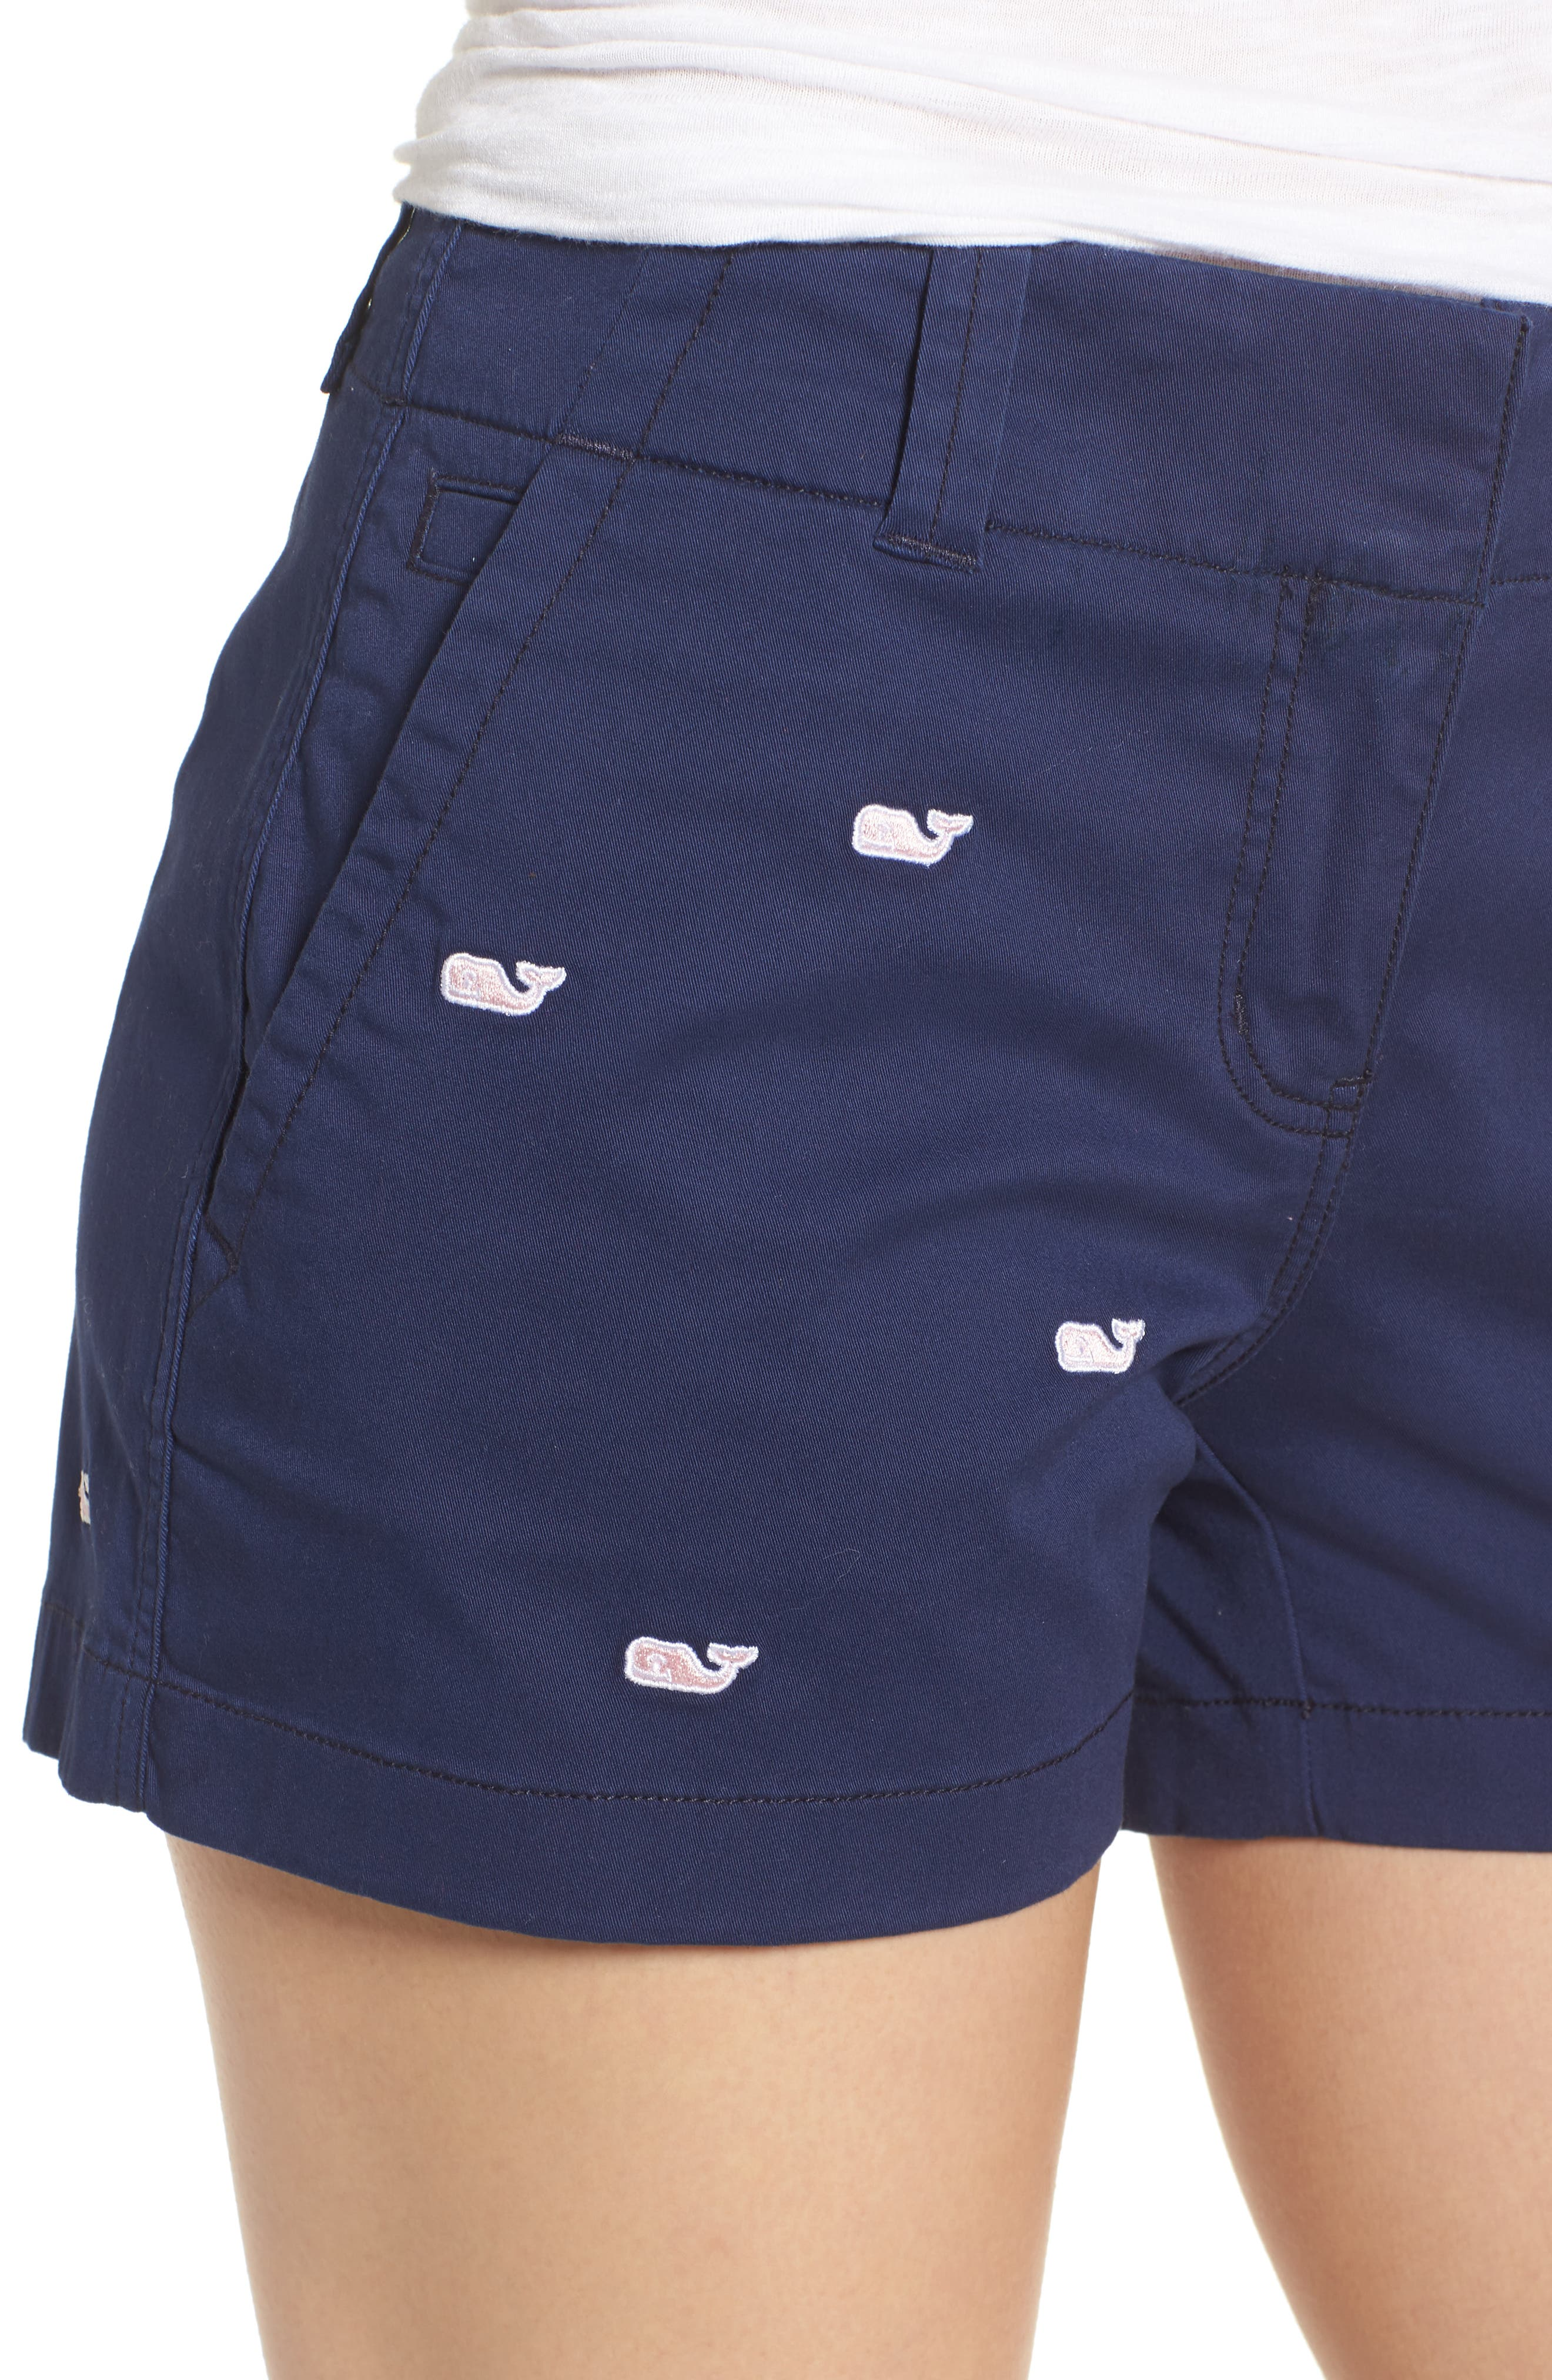 Whale Embroidered Chino Shorts,                             Alternate thumbnail 4, color,                             Deep Bay